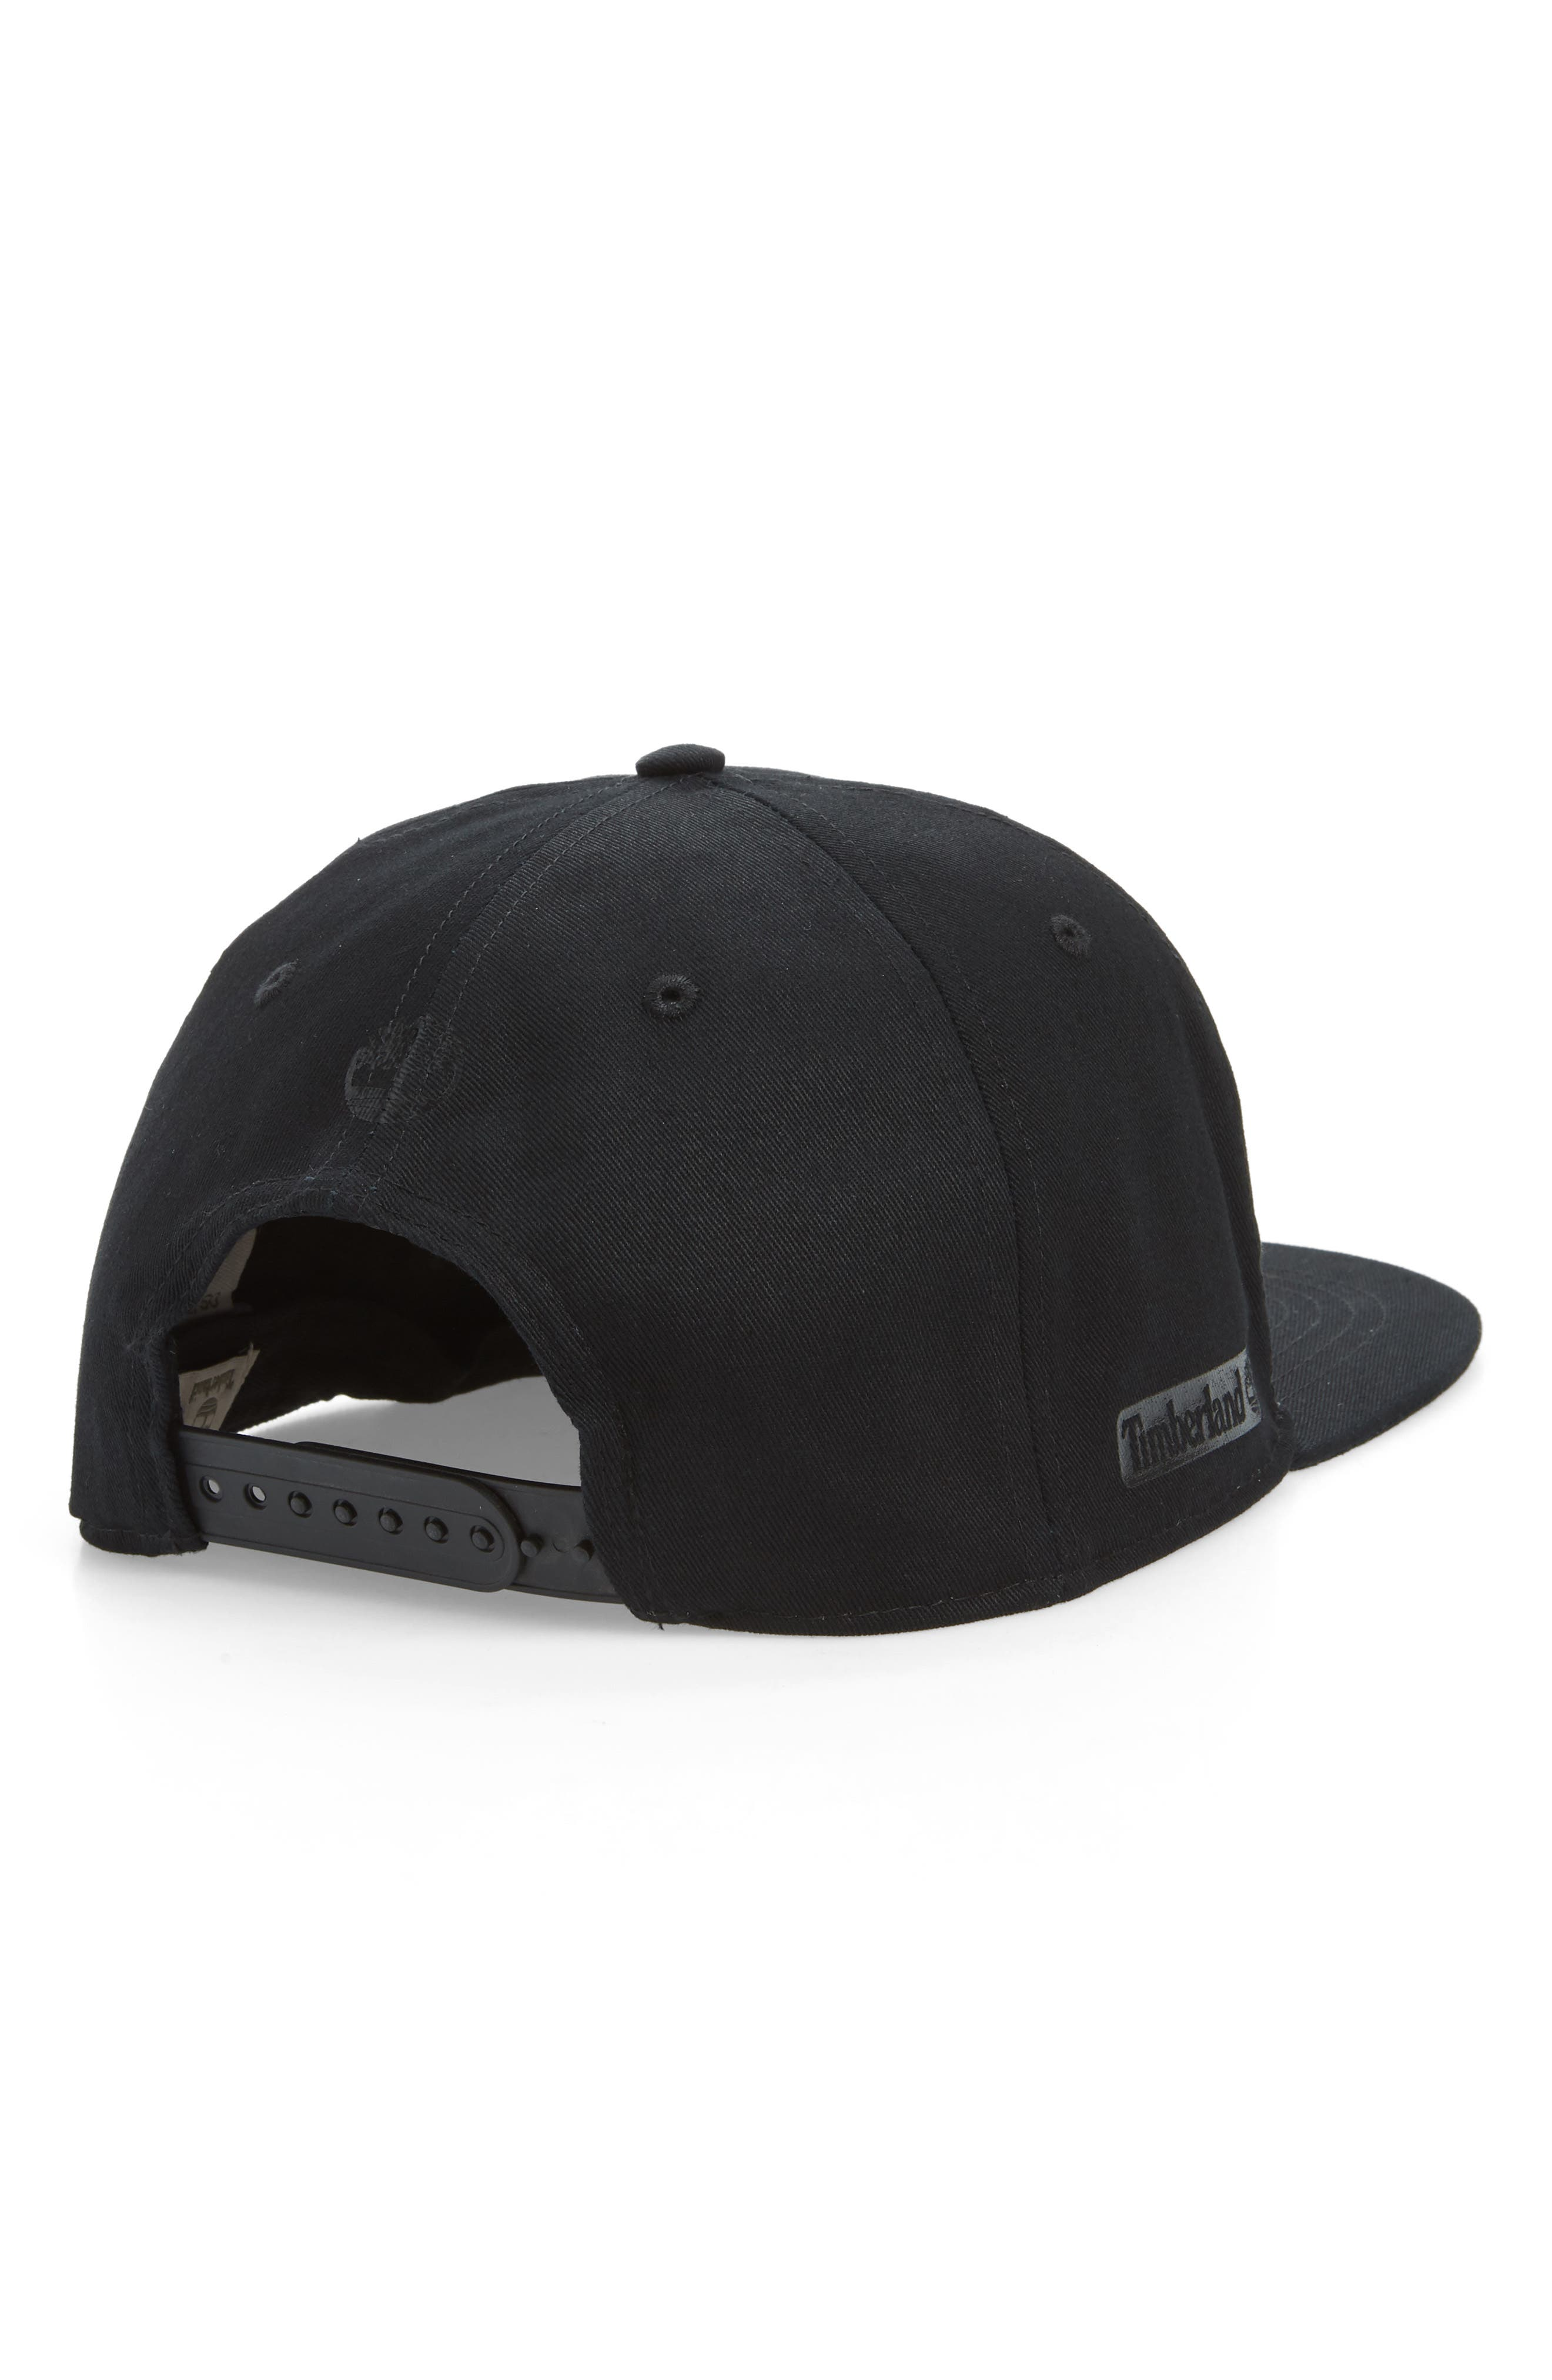 TIMBERLAND, Urban Craft Snapback Baseball Cap, Alternate thumbnail 2, color, BLACK